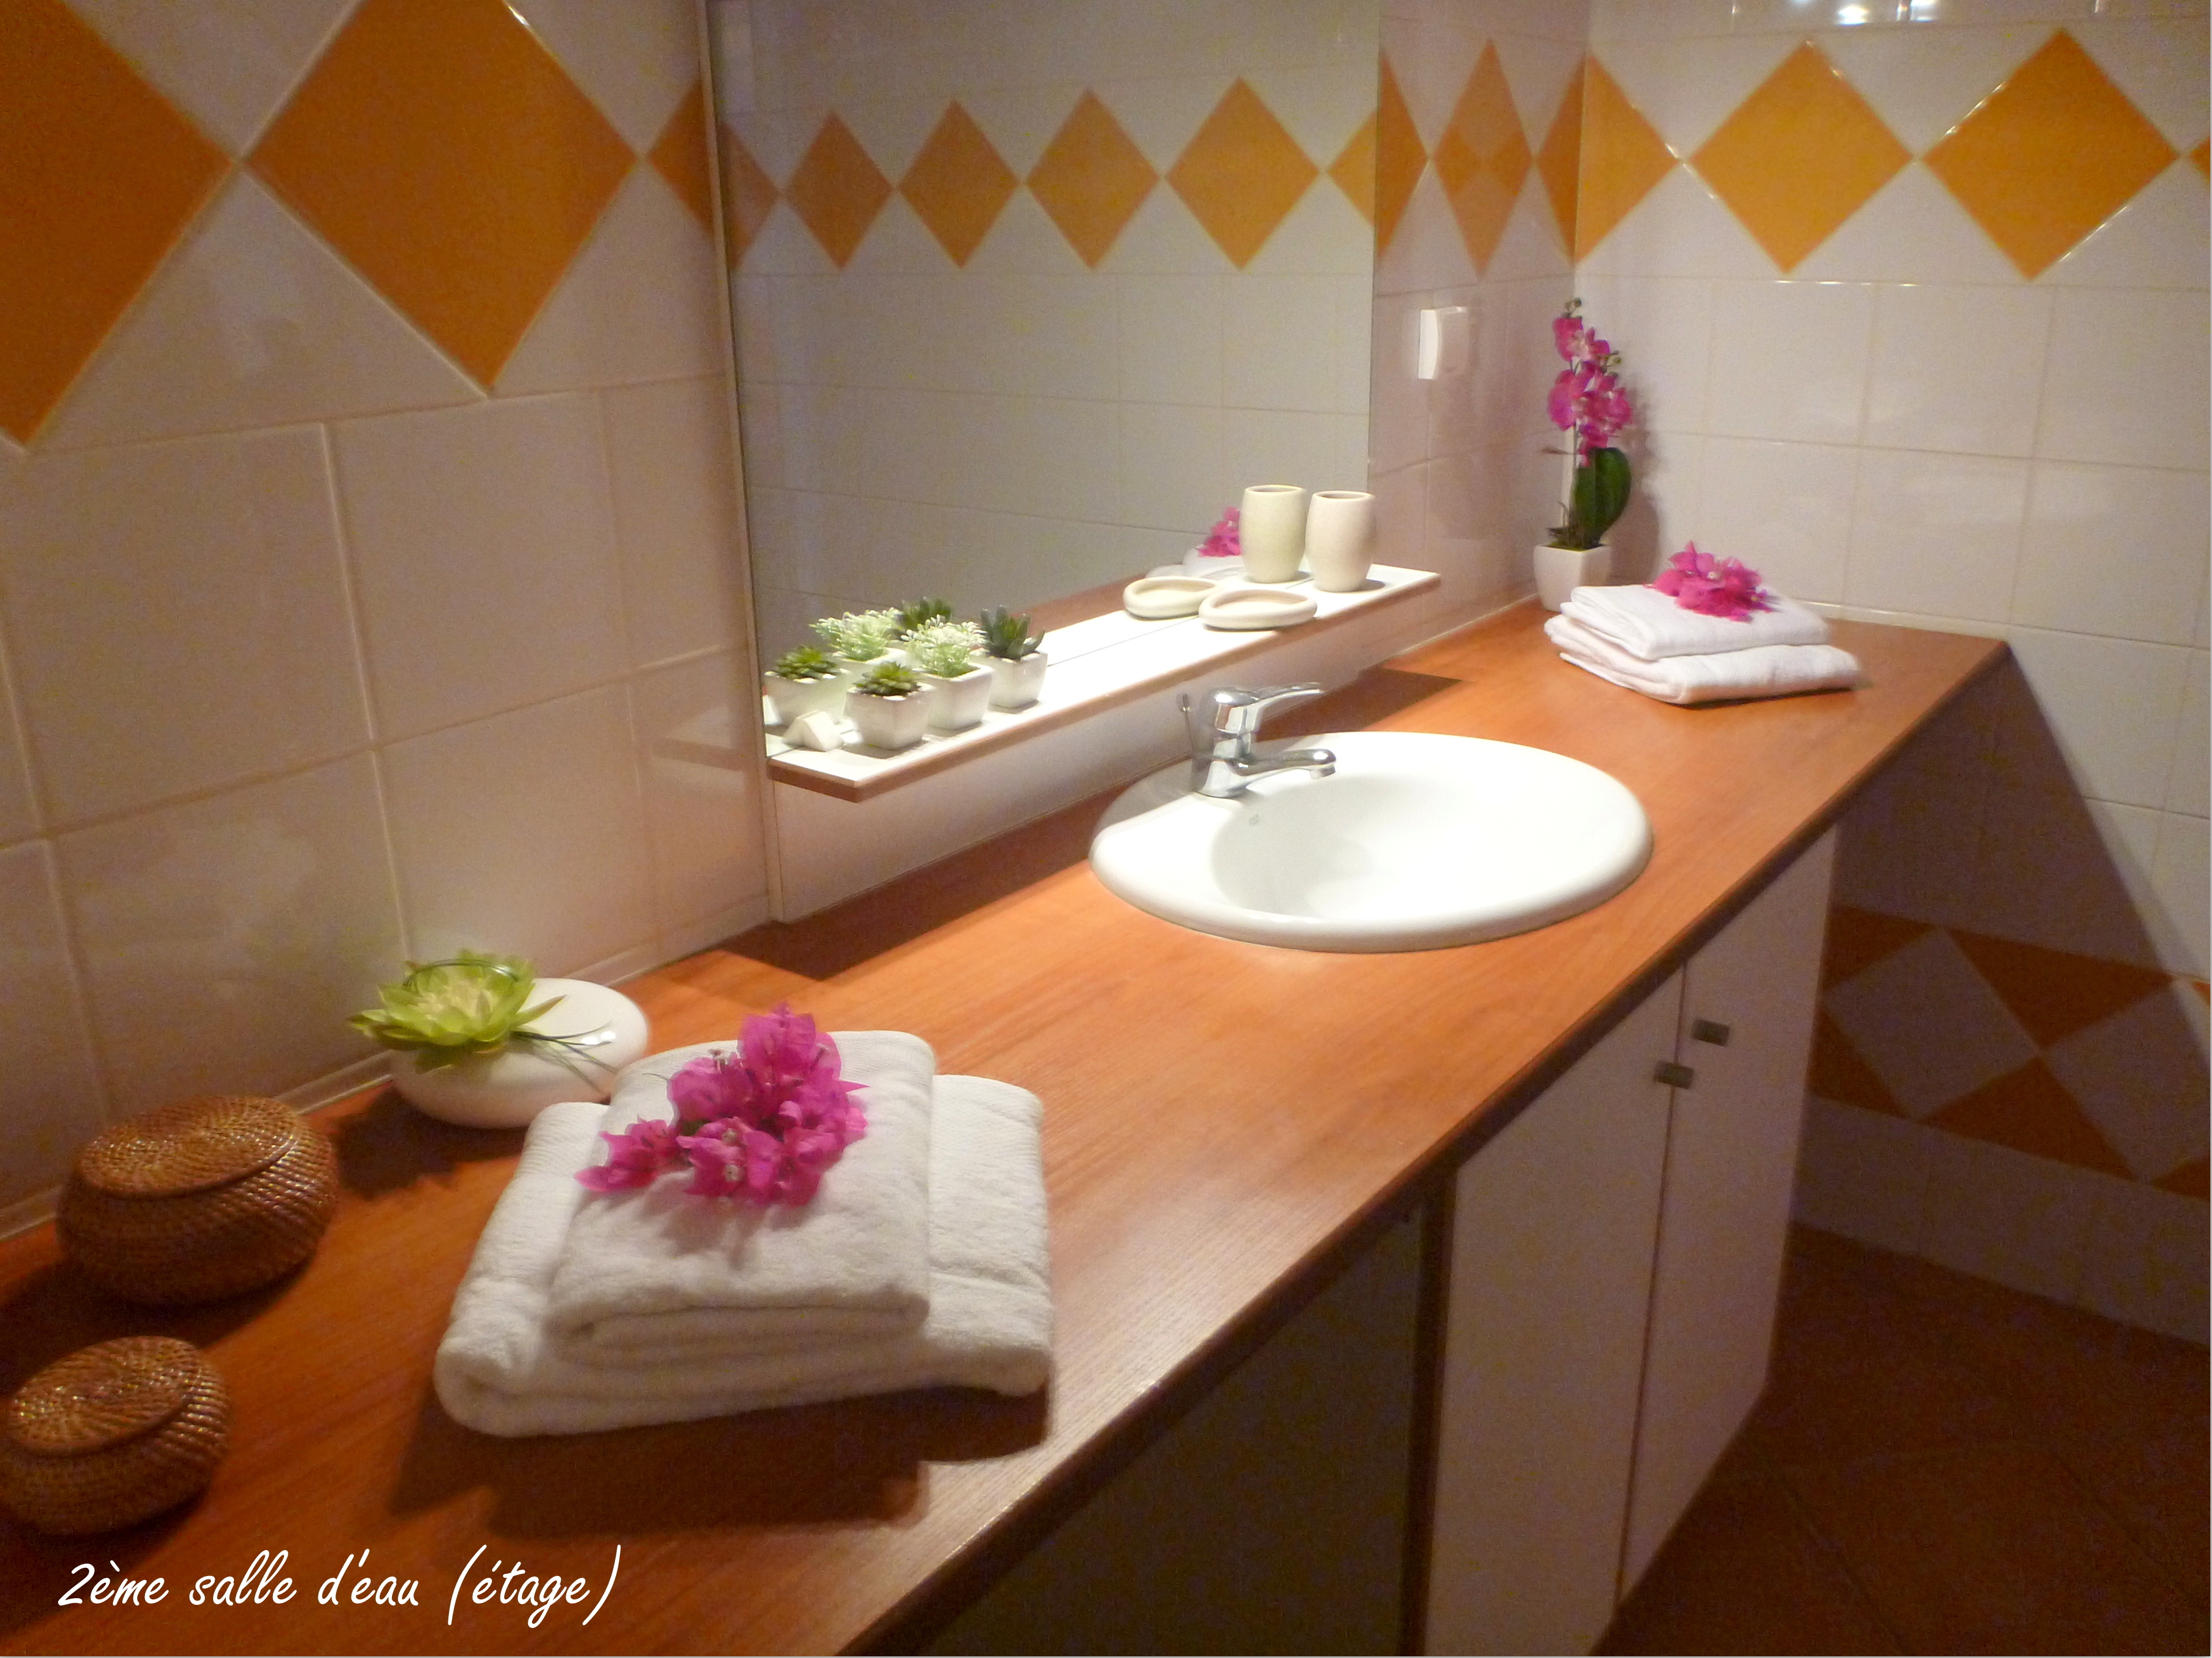 Anoli Location_Salle de bain Orange